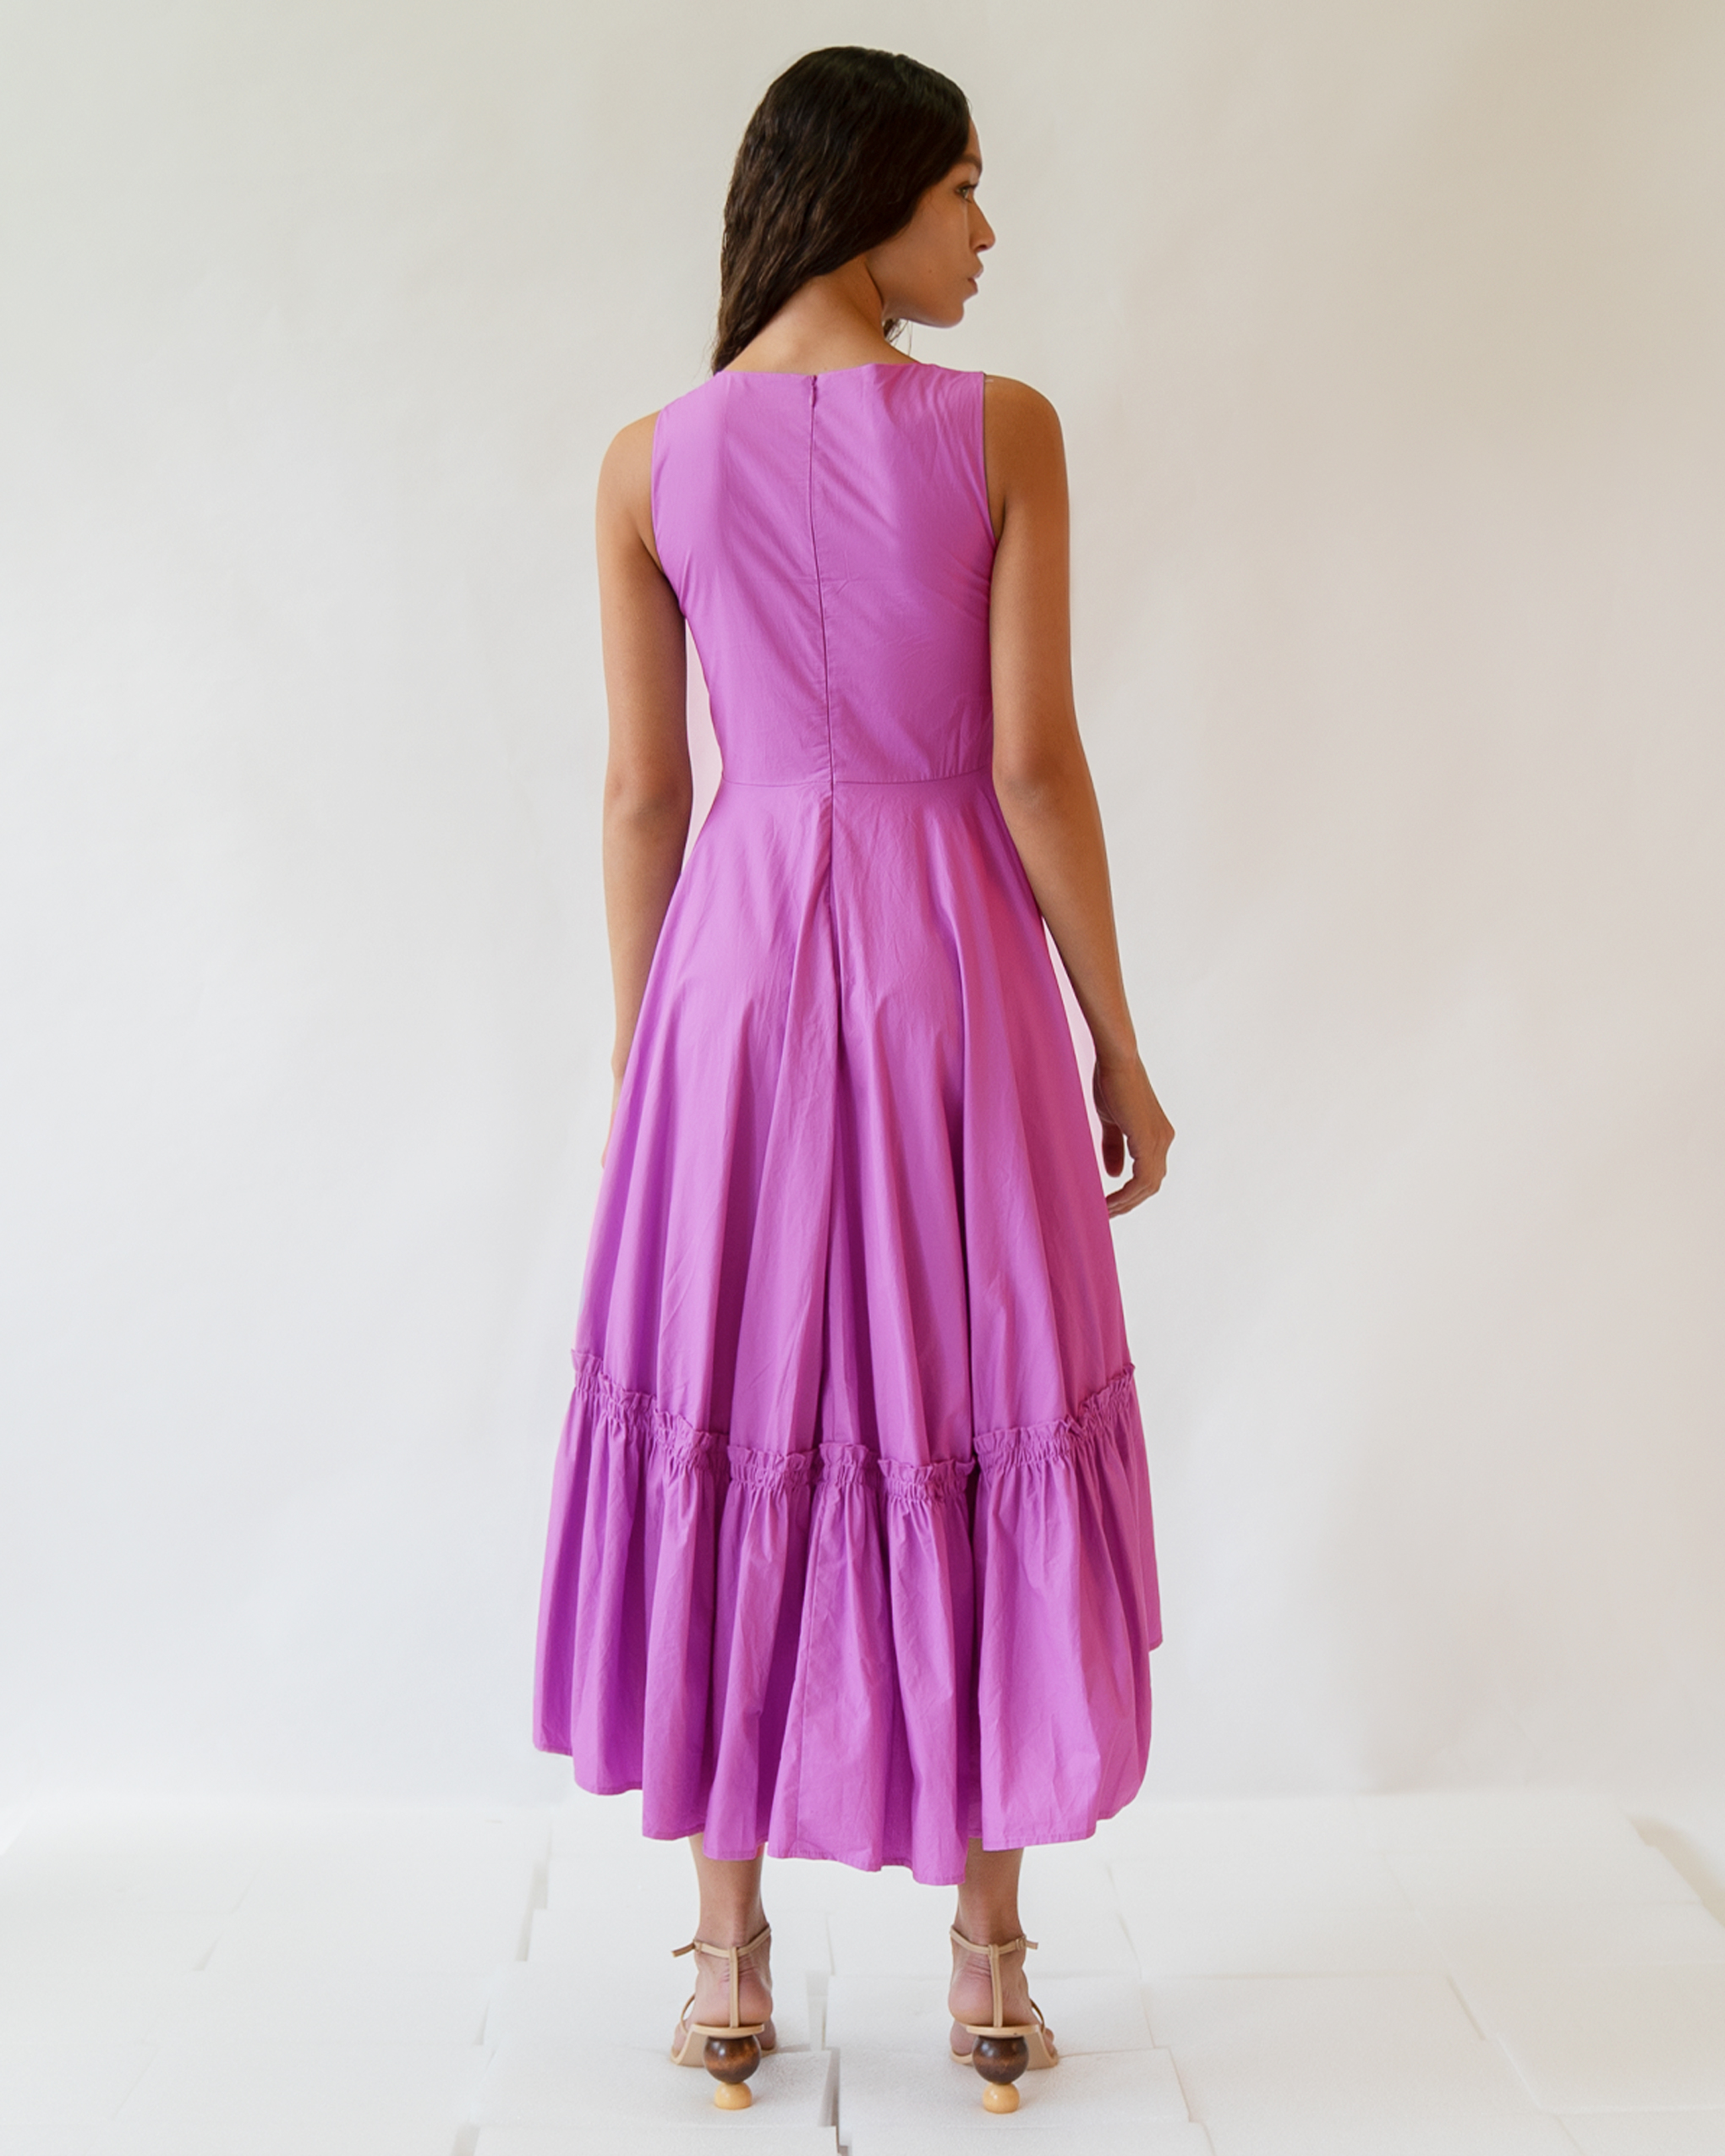 A woman is wearing a violet sleeveless curved gathered skirt cotton dress.